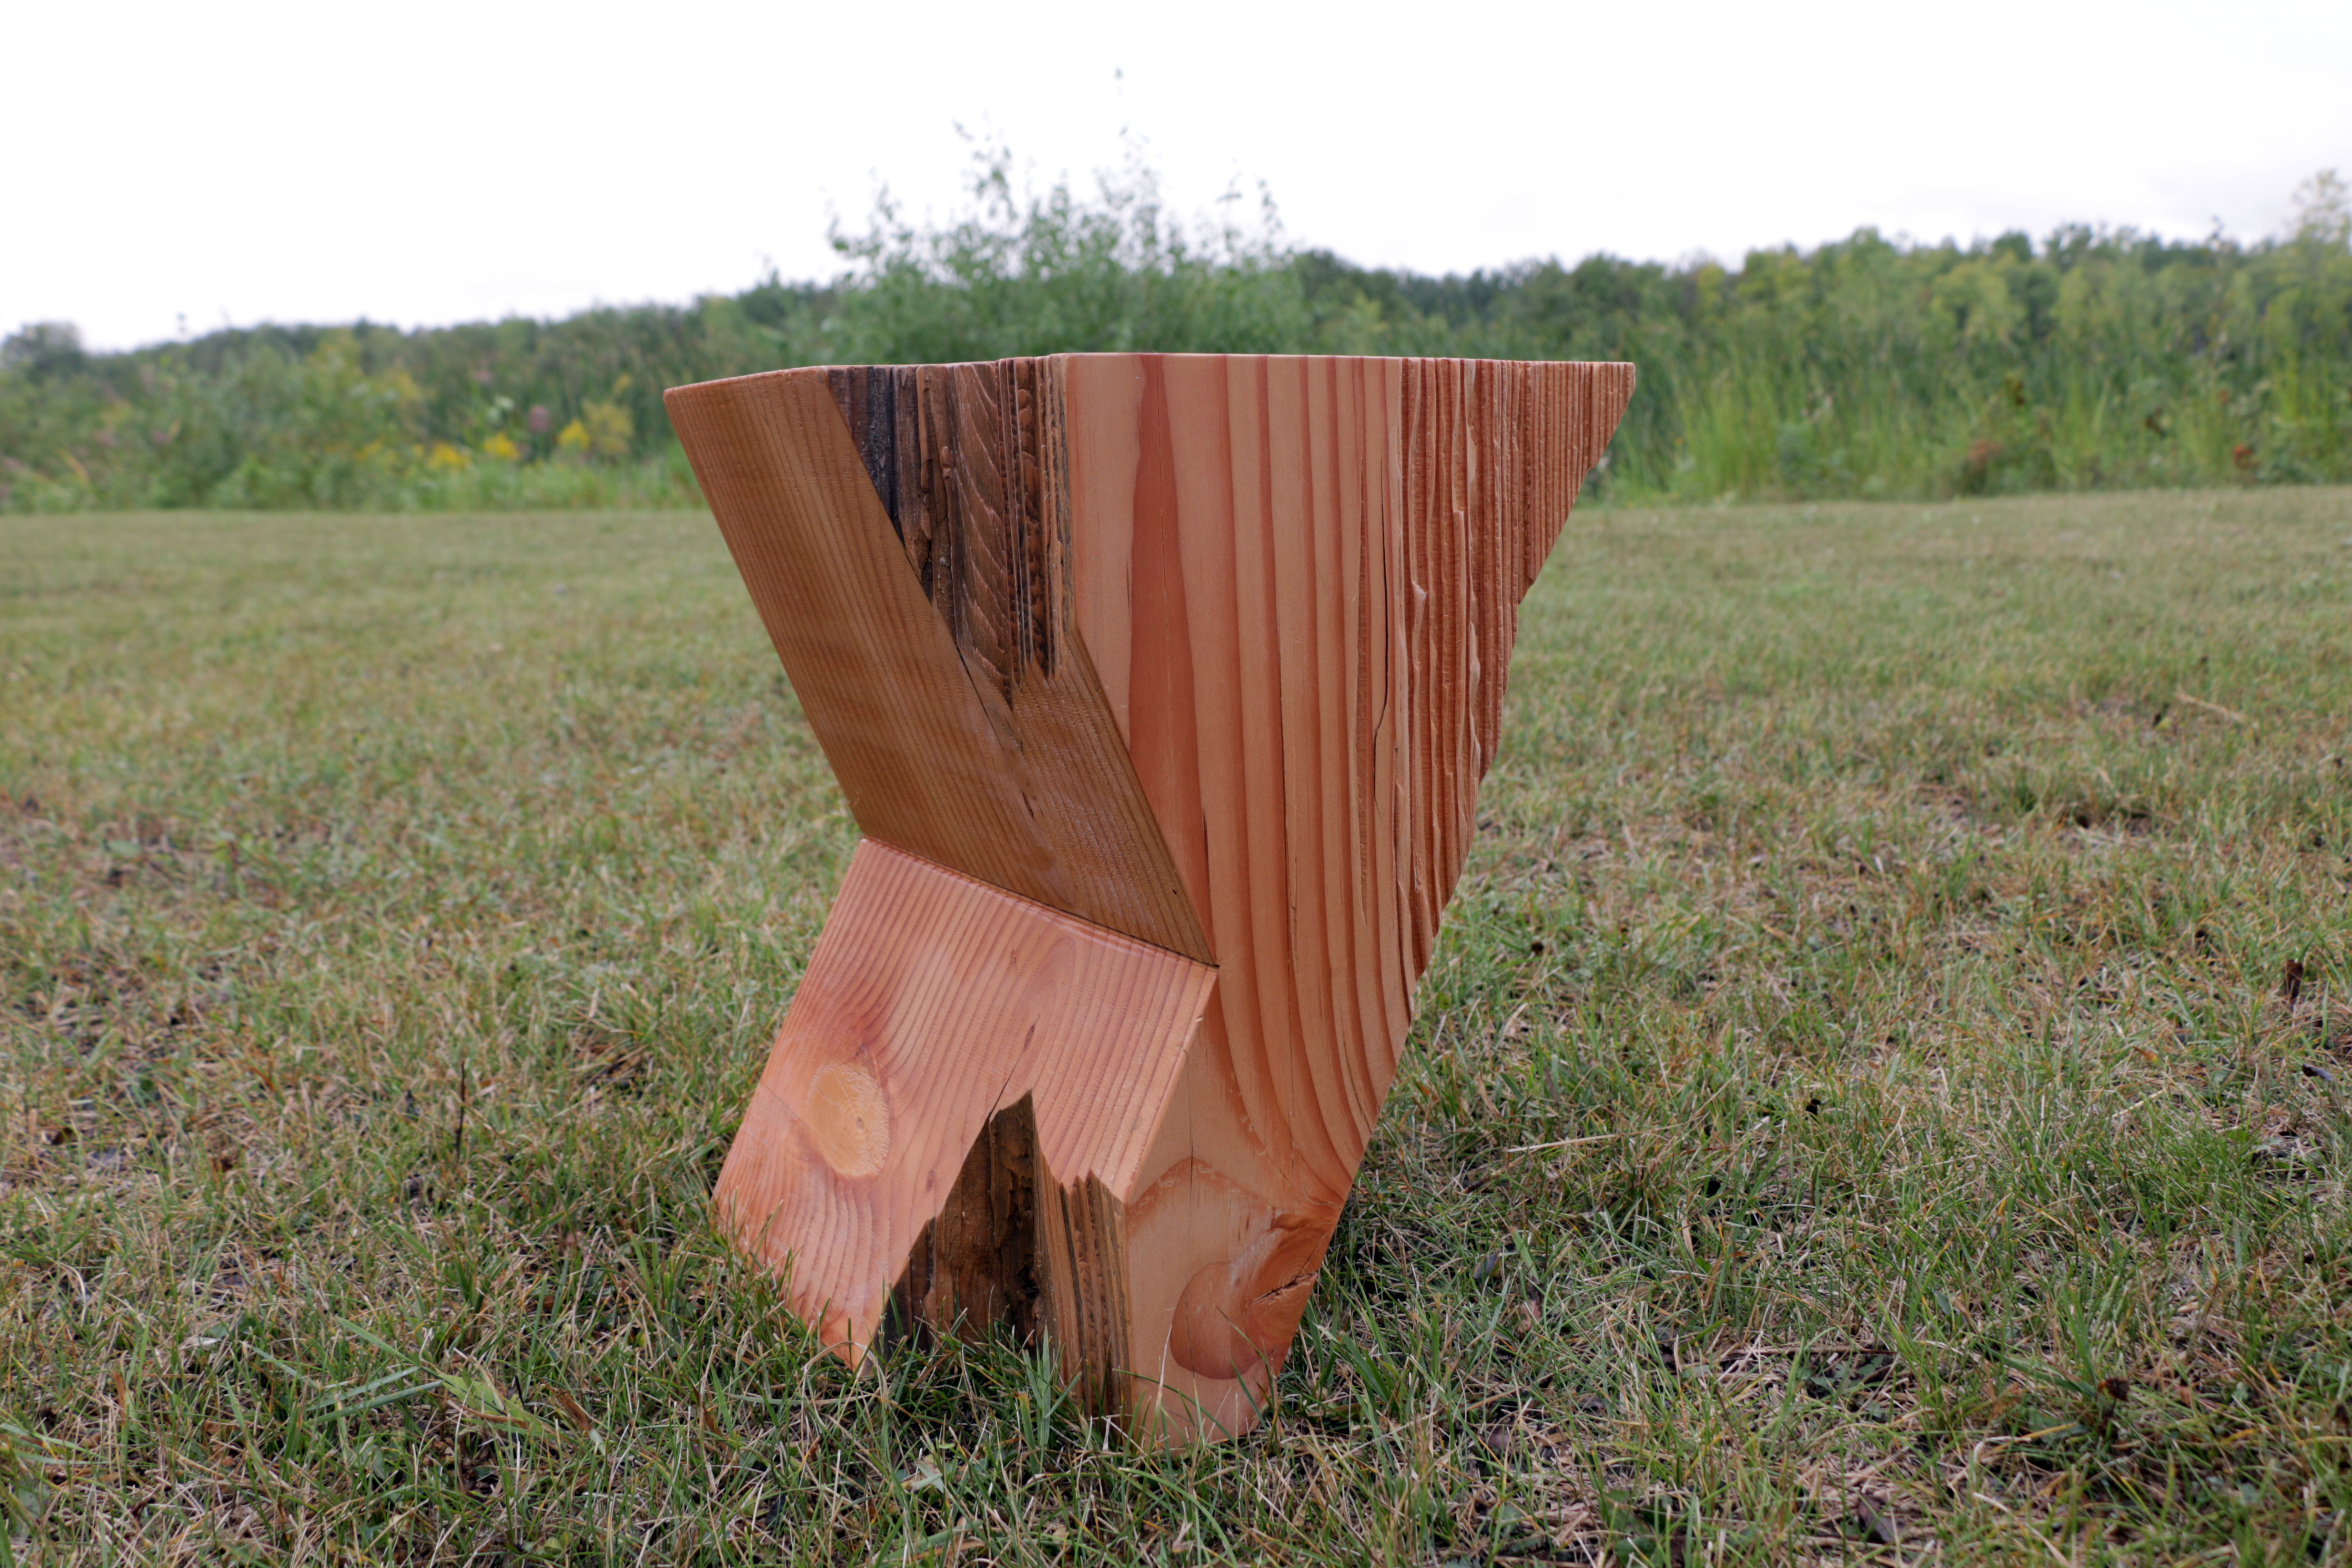 A traditional milk stool made of a solid piece of timber.